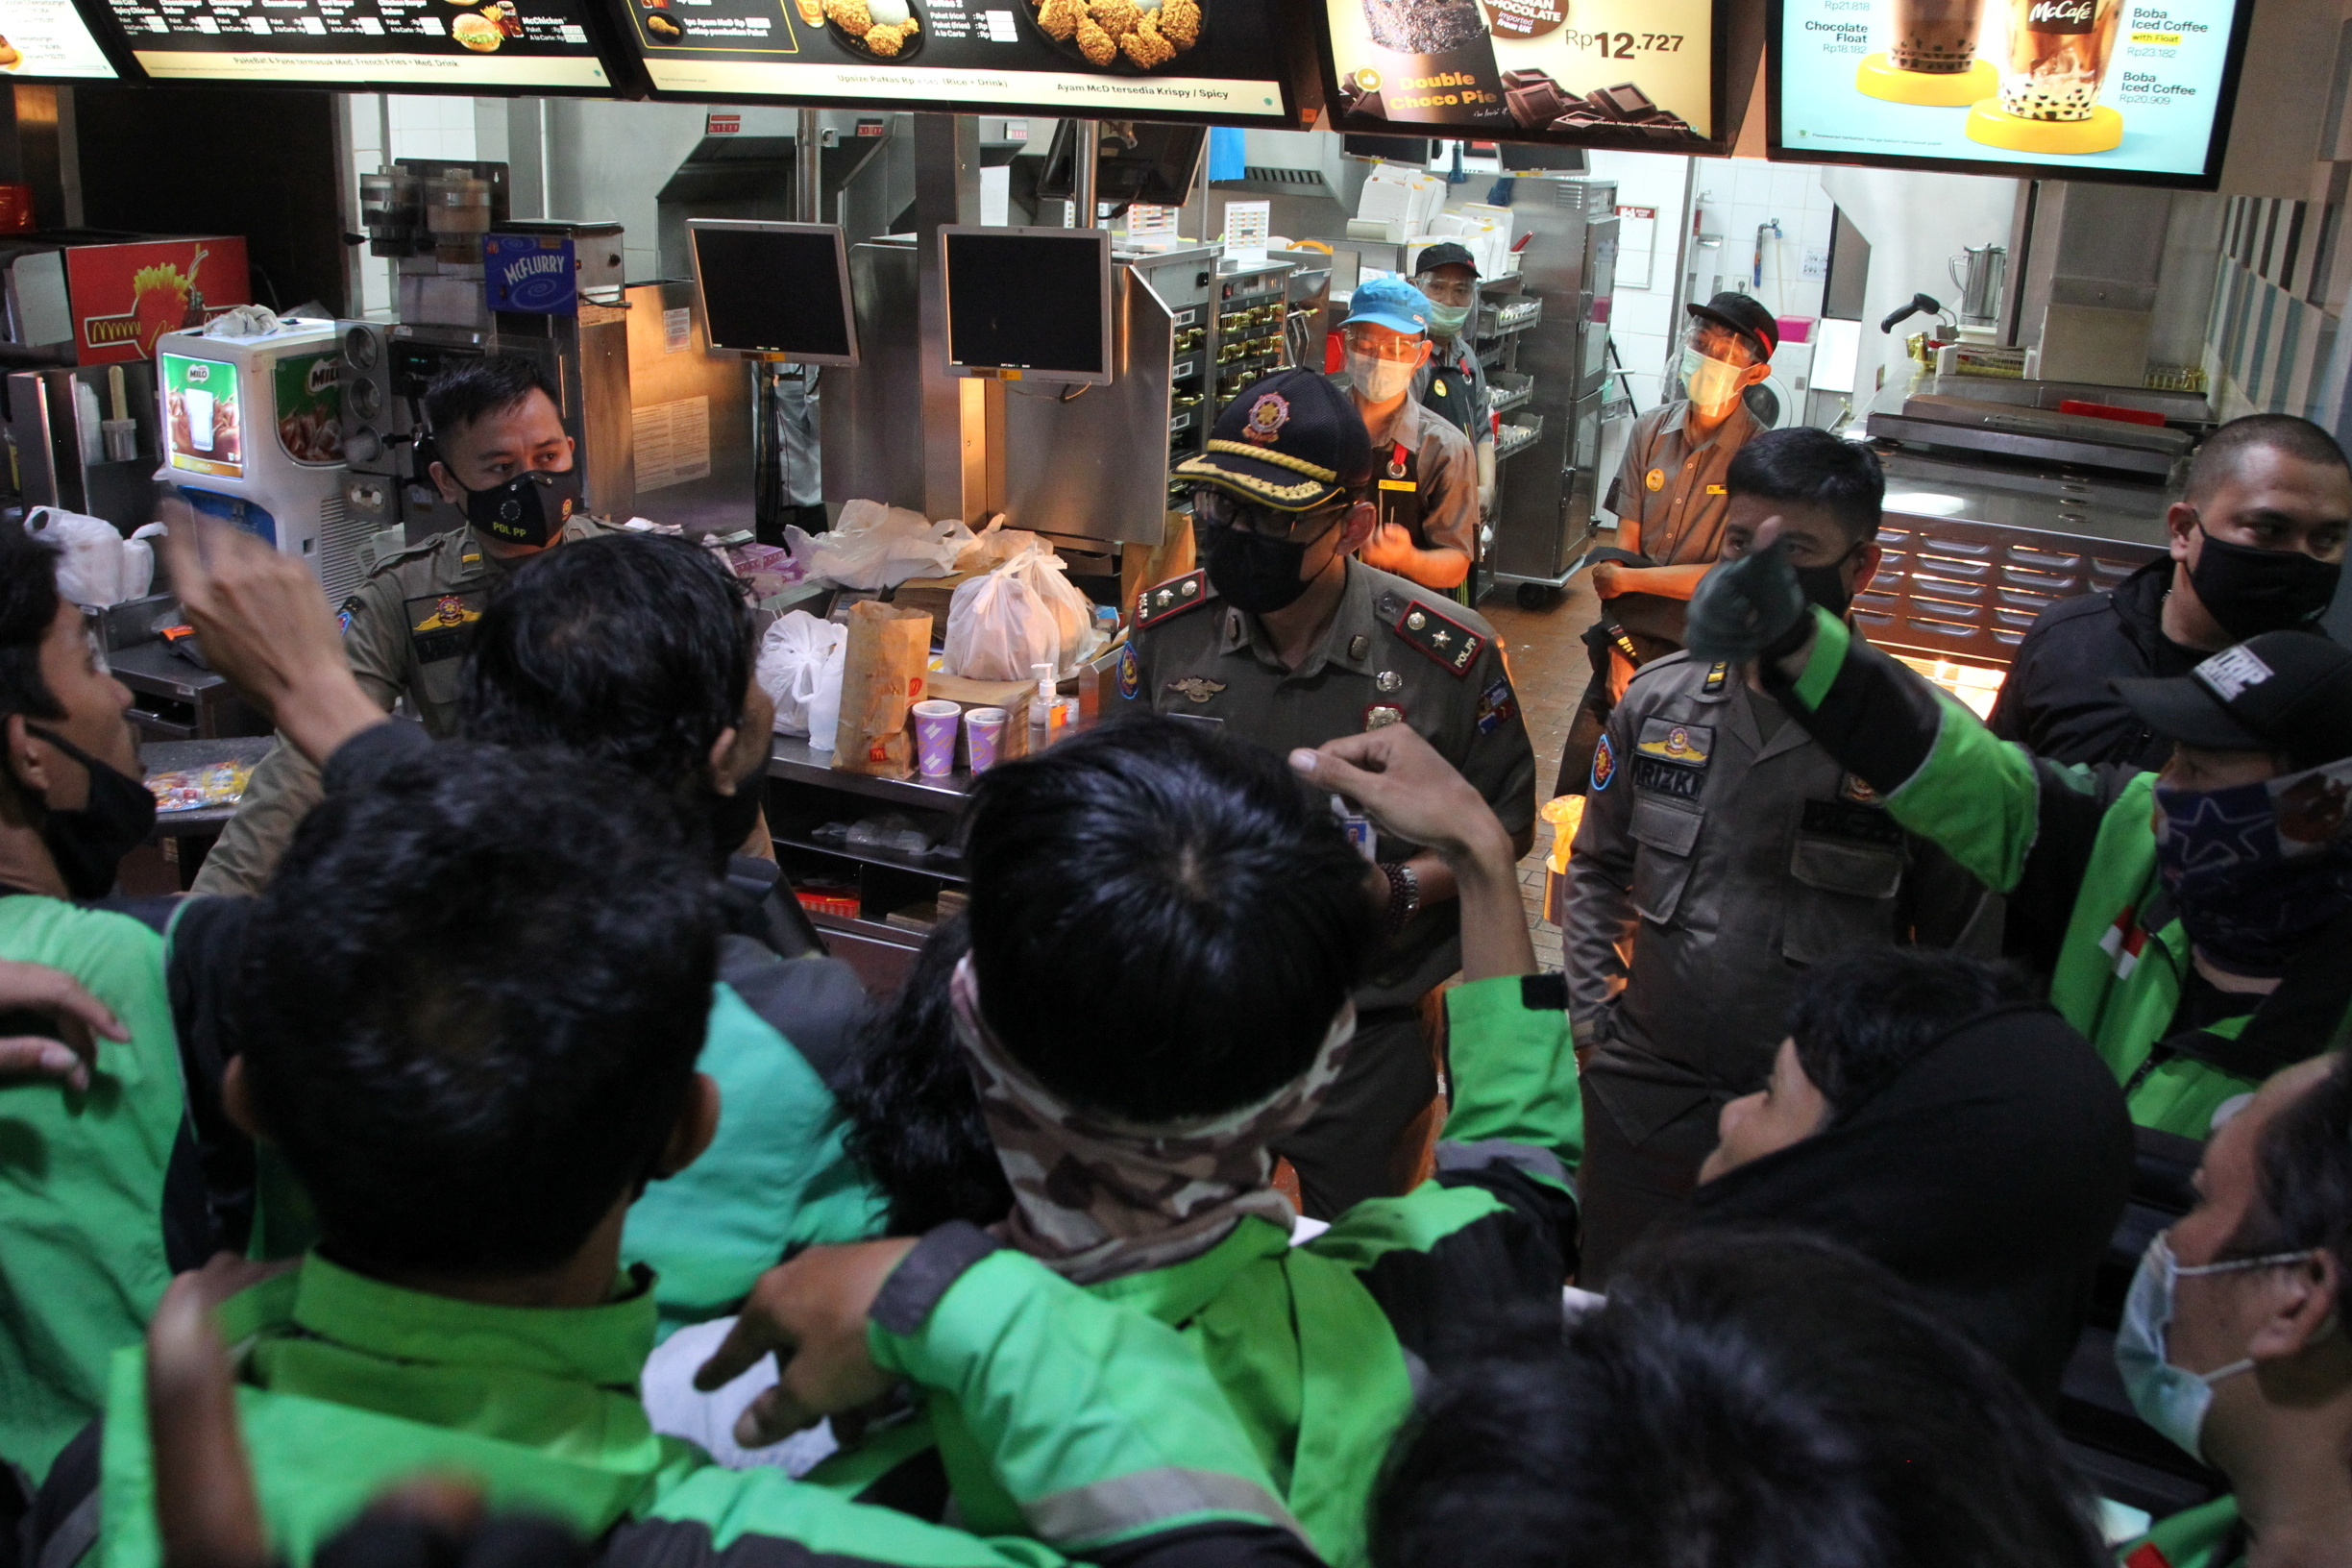 Food delivery drivers crowd in a McDonald's restaurant and wait for BTS meal orders in Bogor, Indonesia, June 9, 2021 in this picture obtained from social media. SOFYAN SHAH RADAR BOGOR/via REUTERS